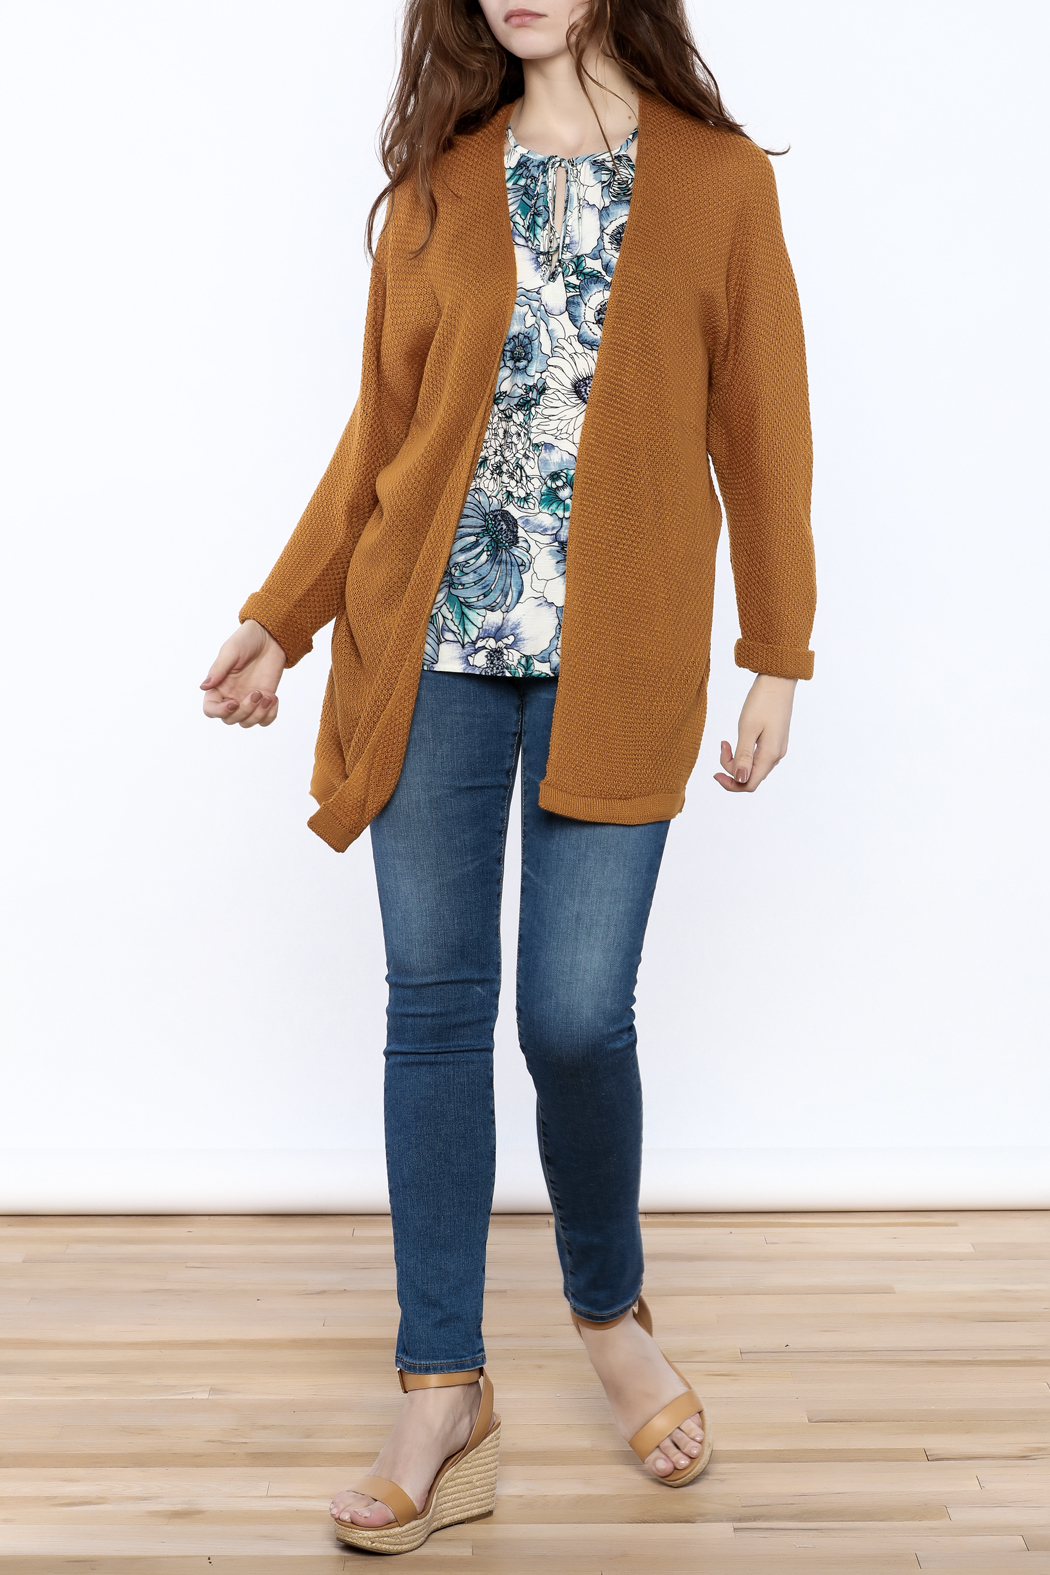 Staccato Mustard Sweater Cardigan from North Carolina by Magnolia ...